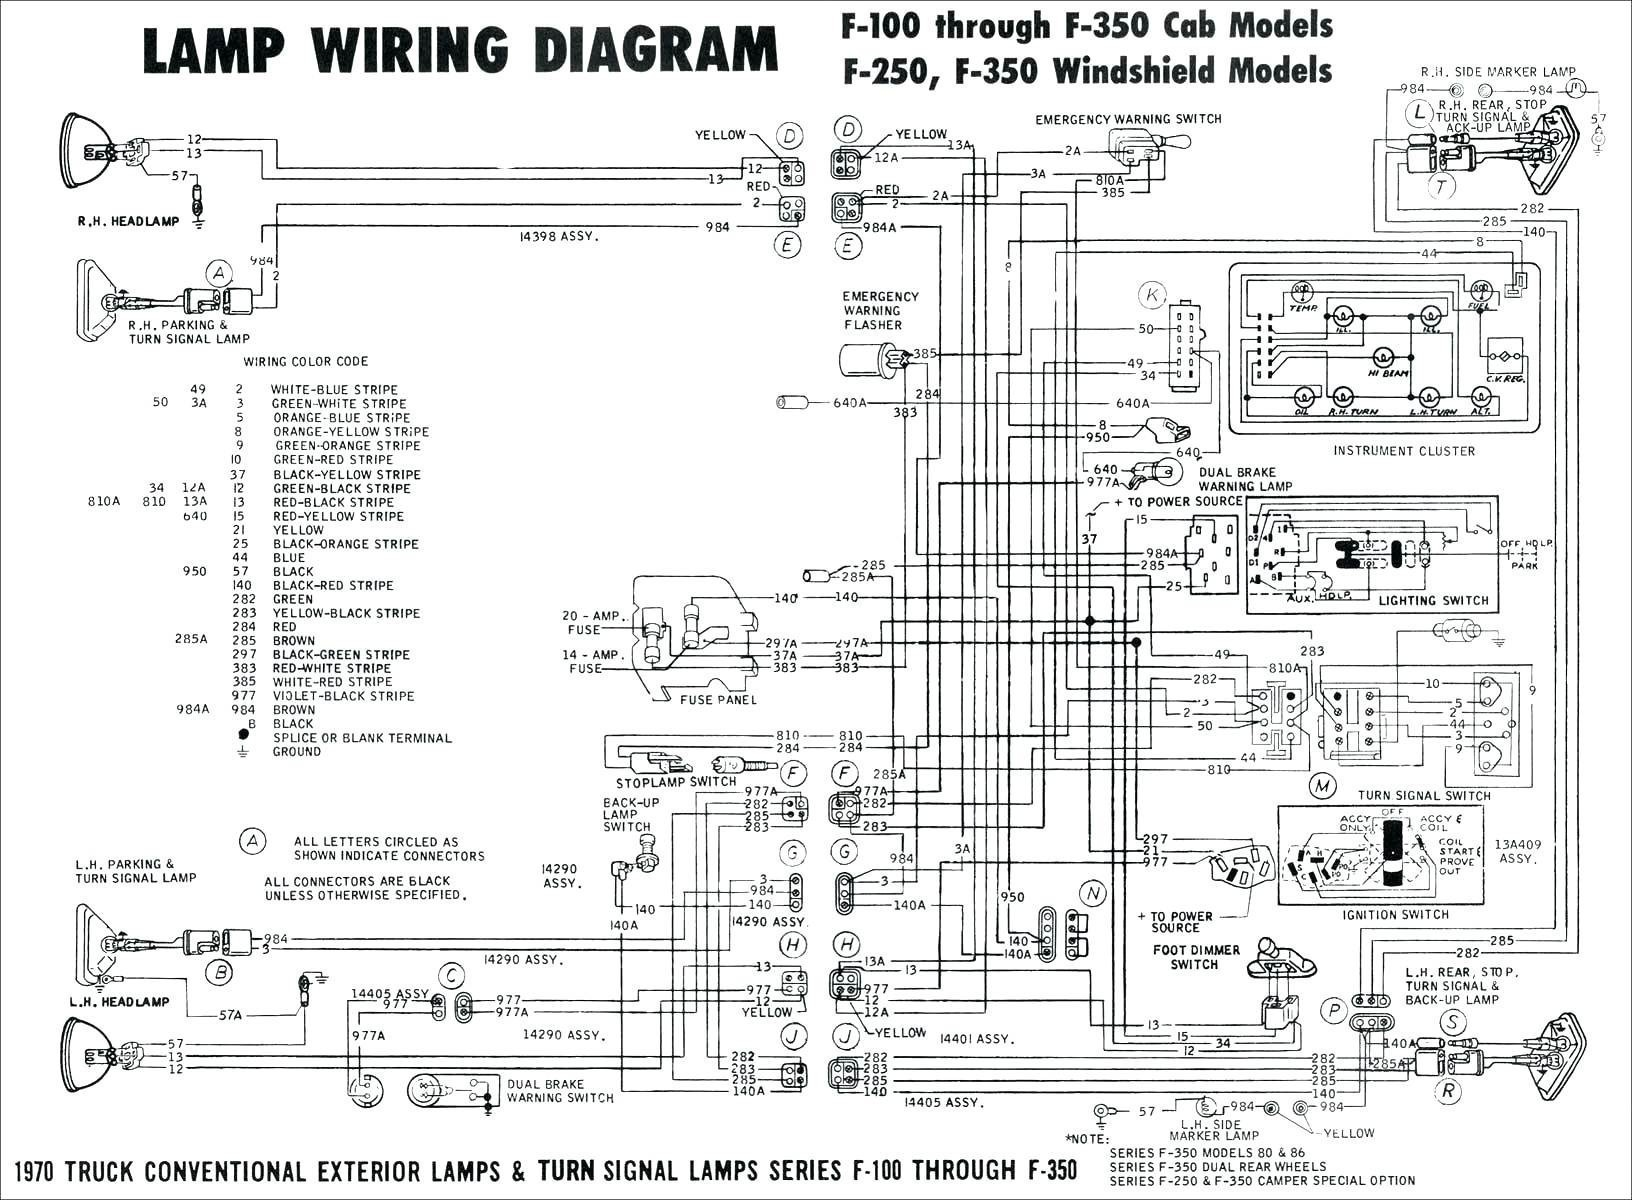 american standard wiring diagram free wiring diagram. Black Bedroom Furniture Sets. Home Design Ideas